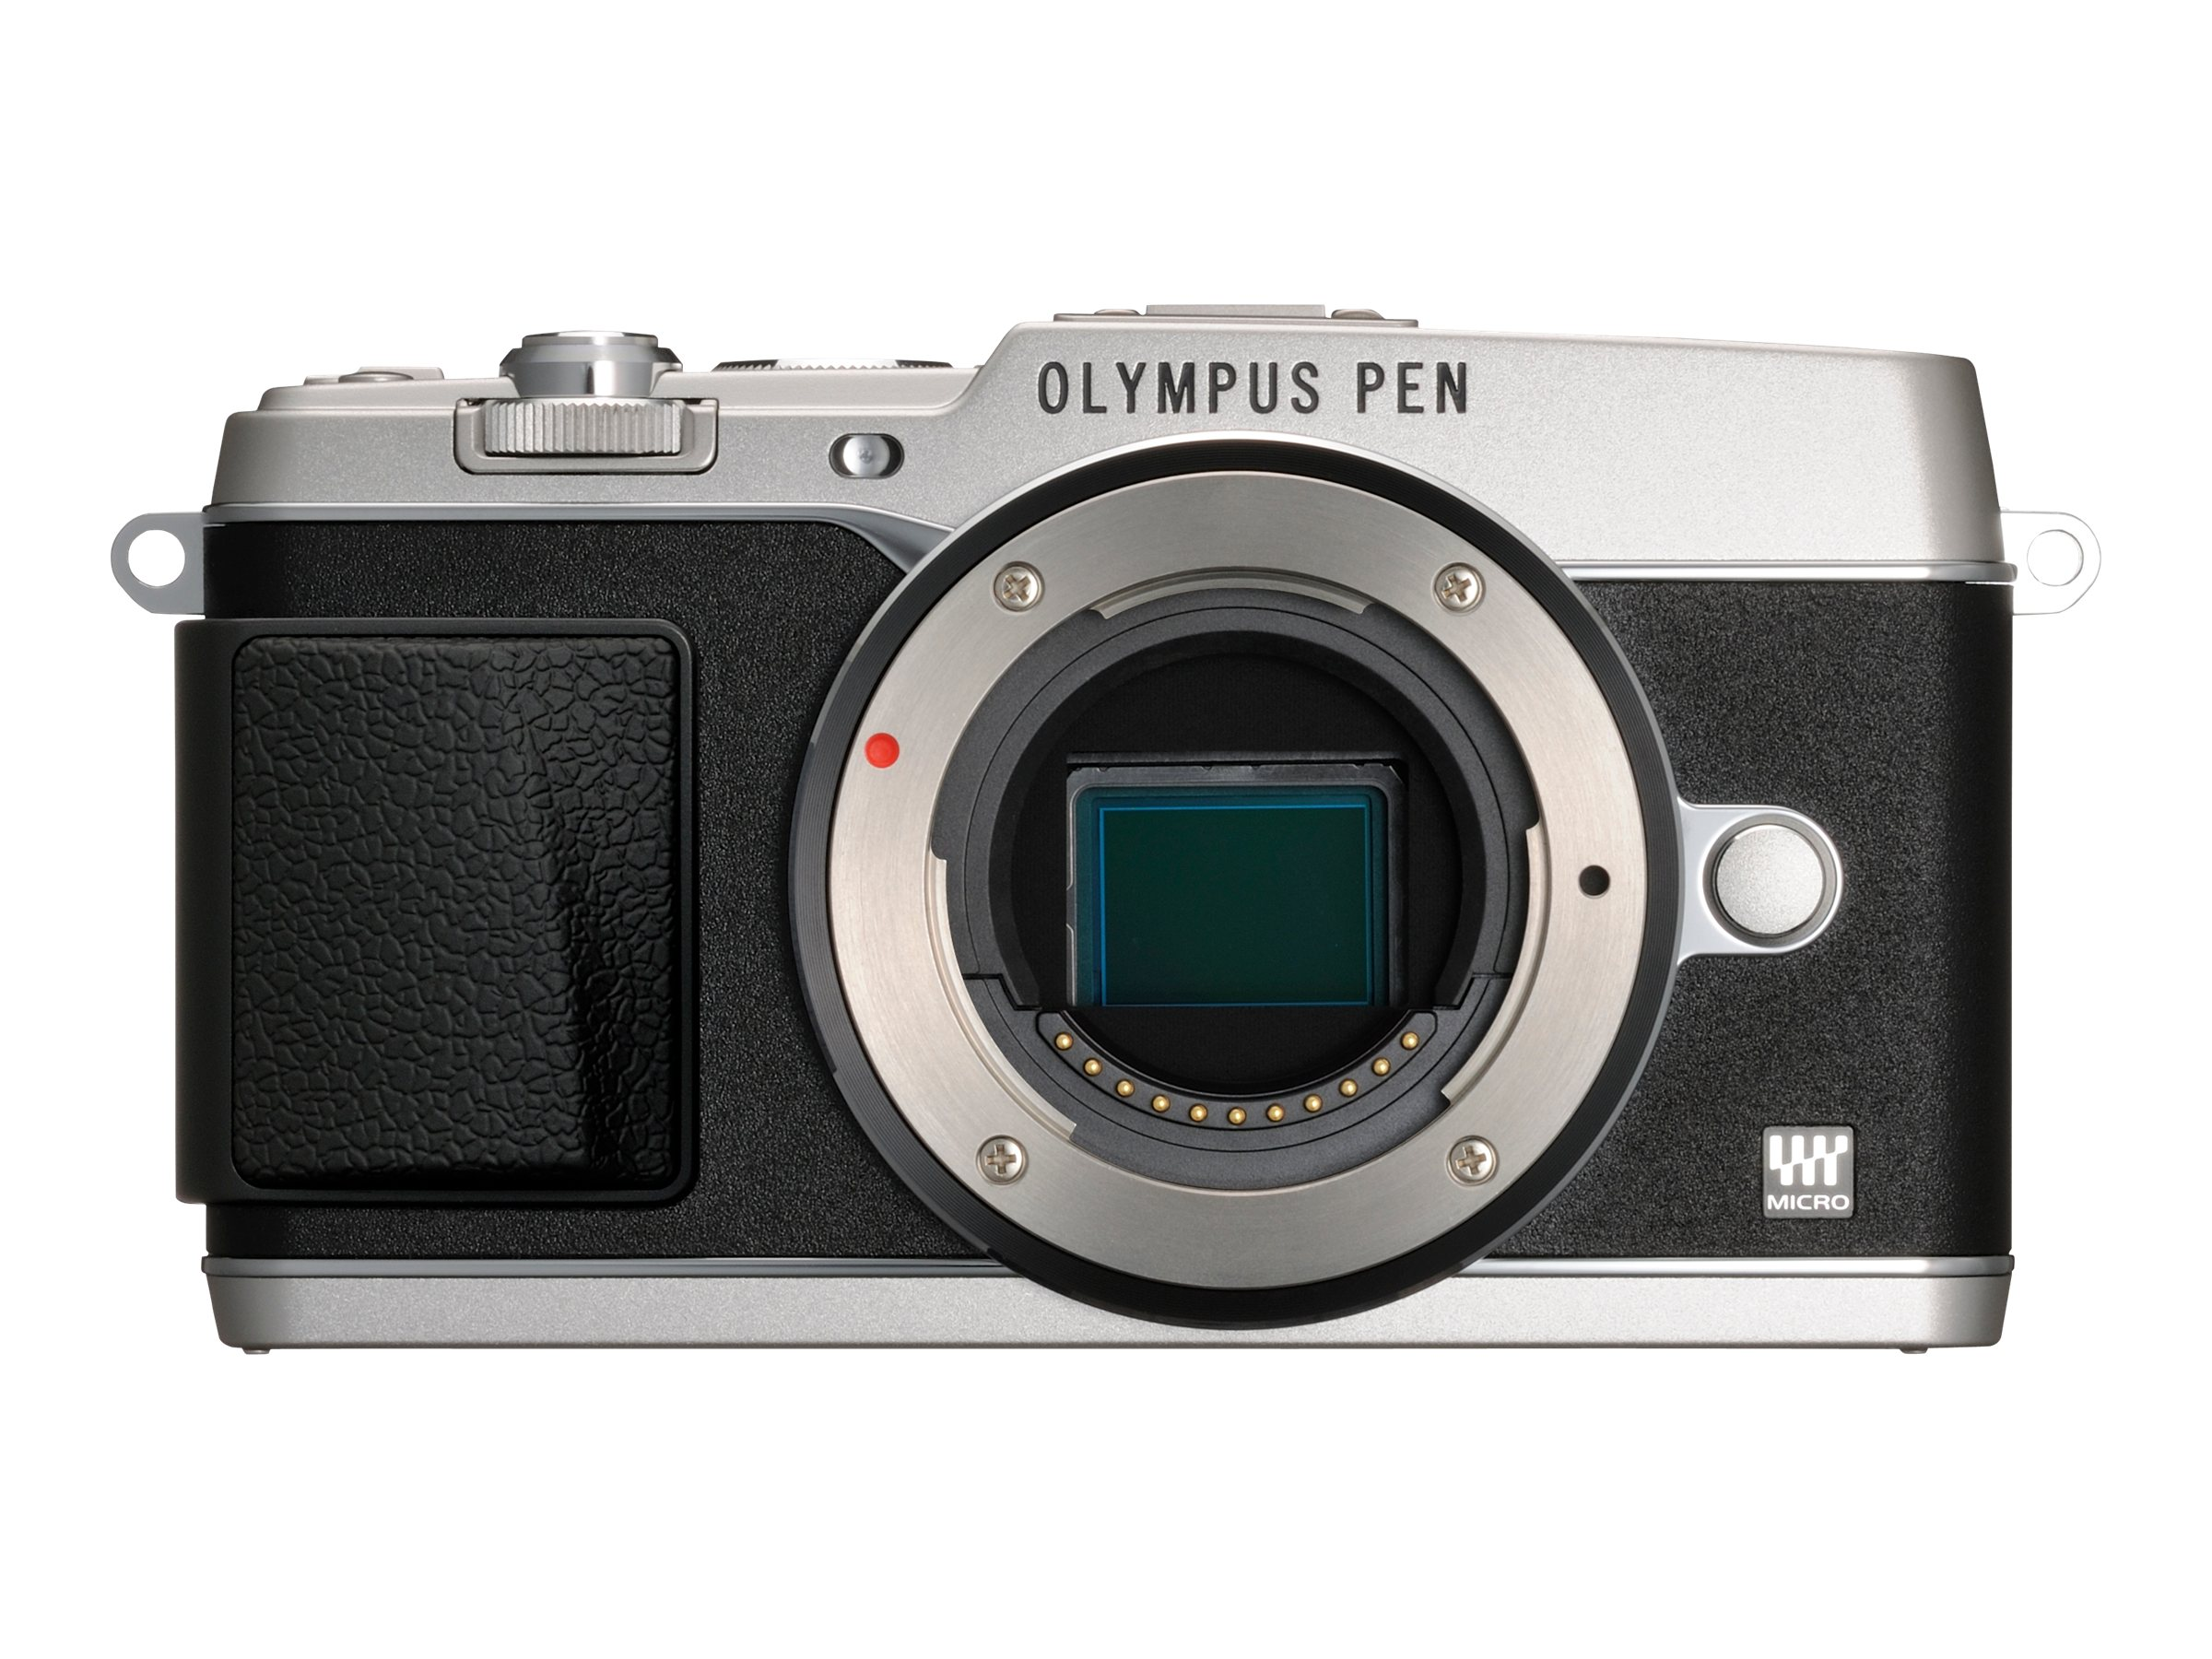 Olympus E-P5 PEN Mirrorless Digital Camera with 17mm f 1.8 Lens and VF-4 Viewfinder, Silver, V204053SU000, 15751915, Cameras - Digital - SLR